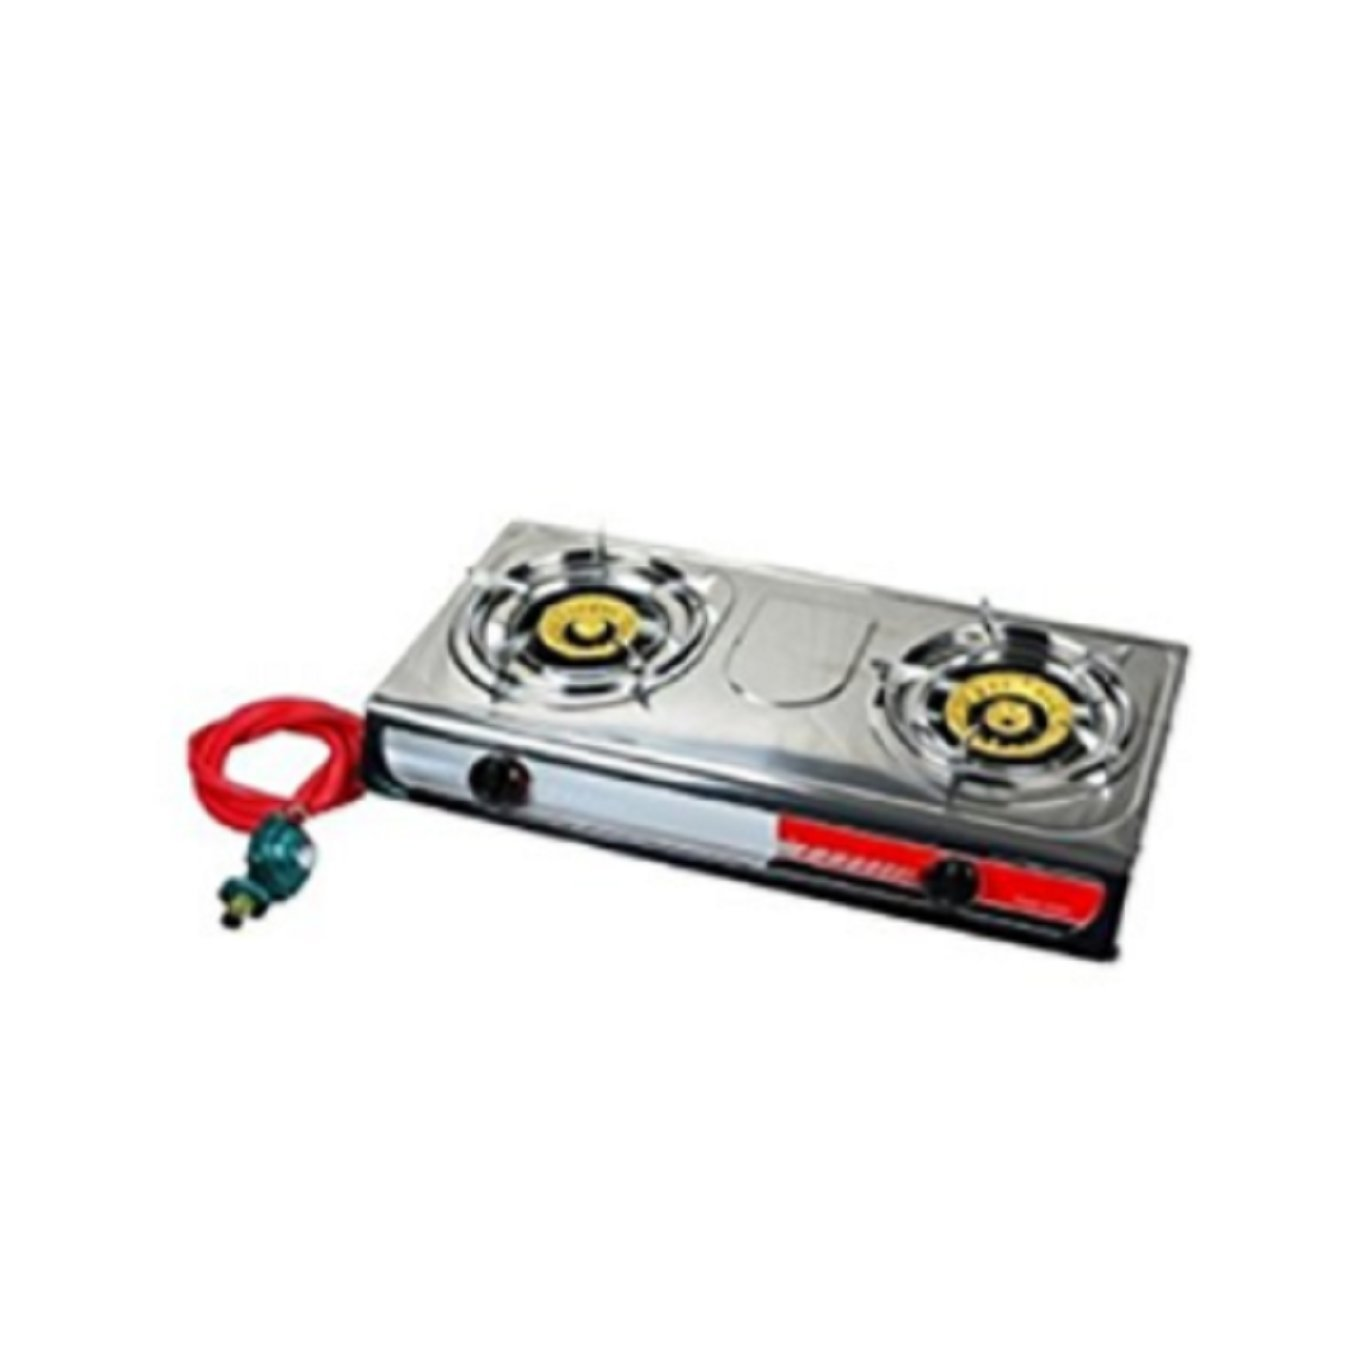 USA Premium Store Portable Propane Gas Stove DOUBLE 2 Burner CAMPING TAIL GATE Tailgating Stoves